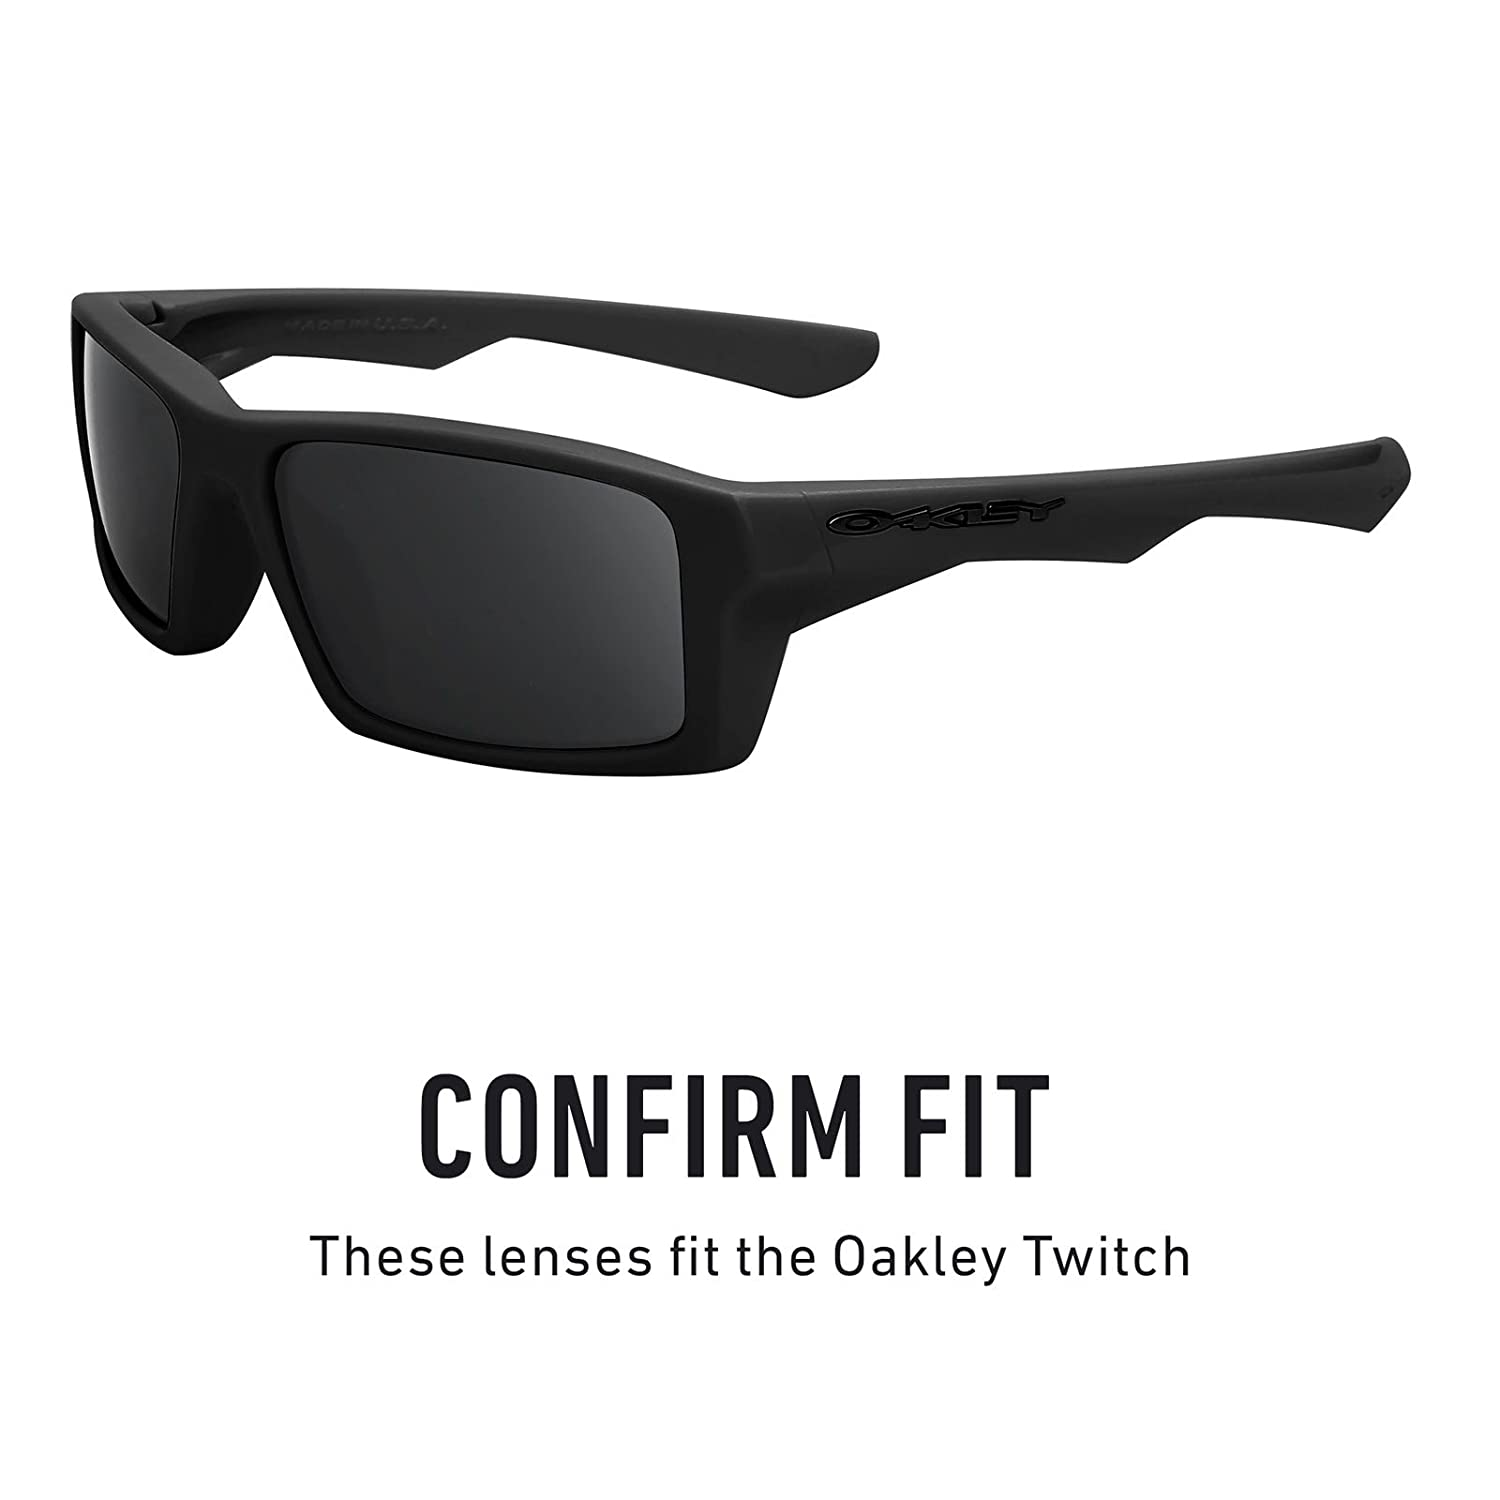 Revant Lenses Replacement For Oakley Twitch ZiPuOXk